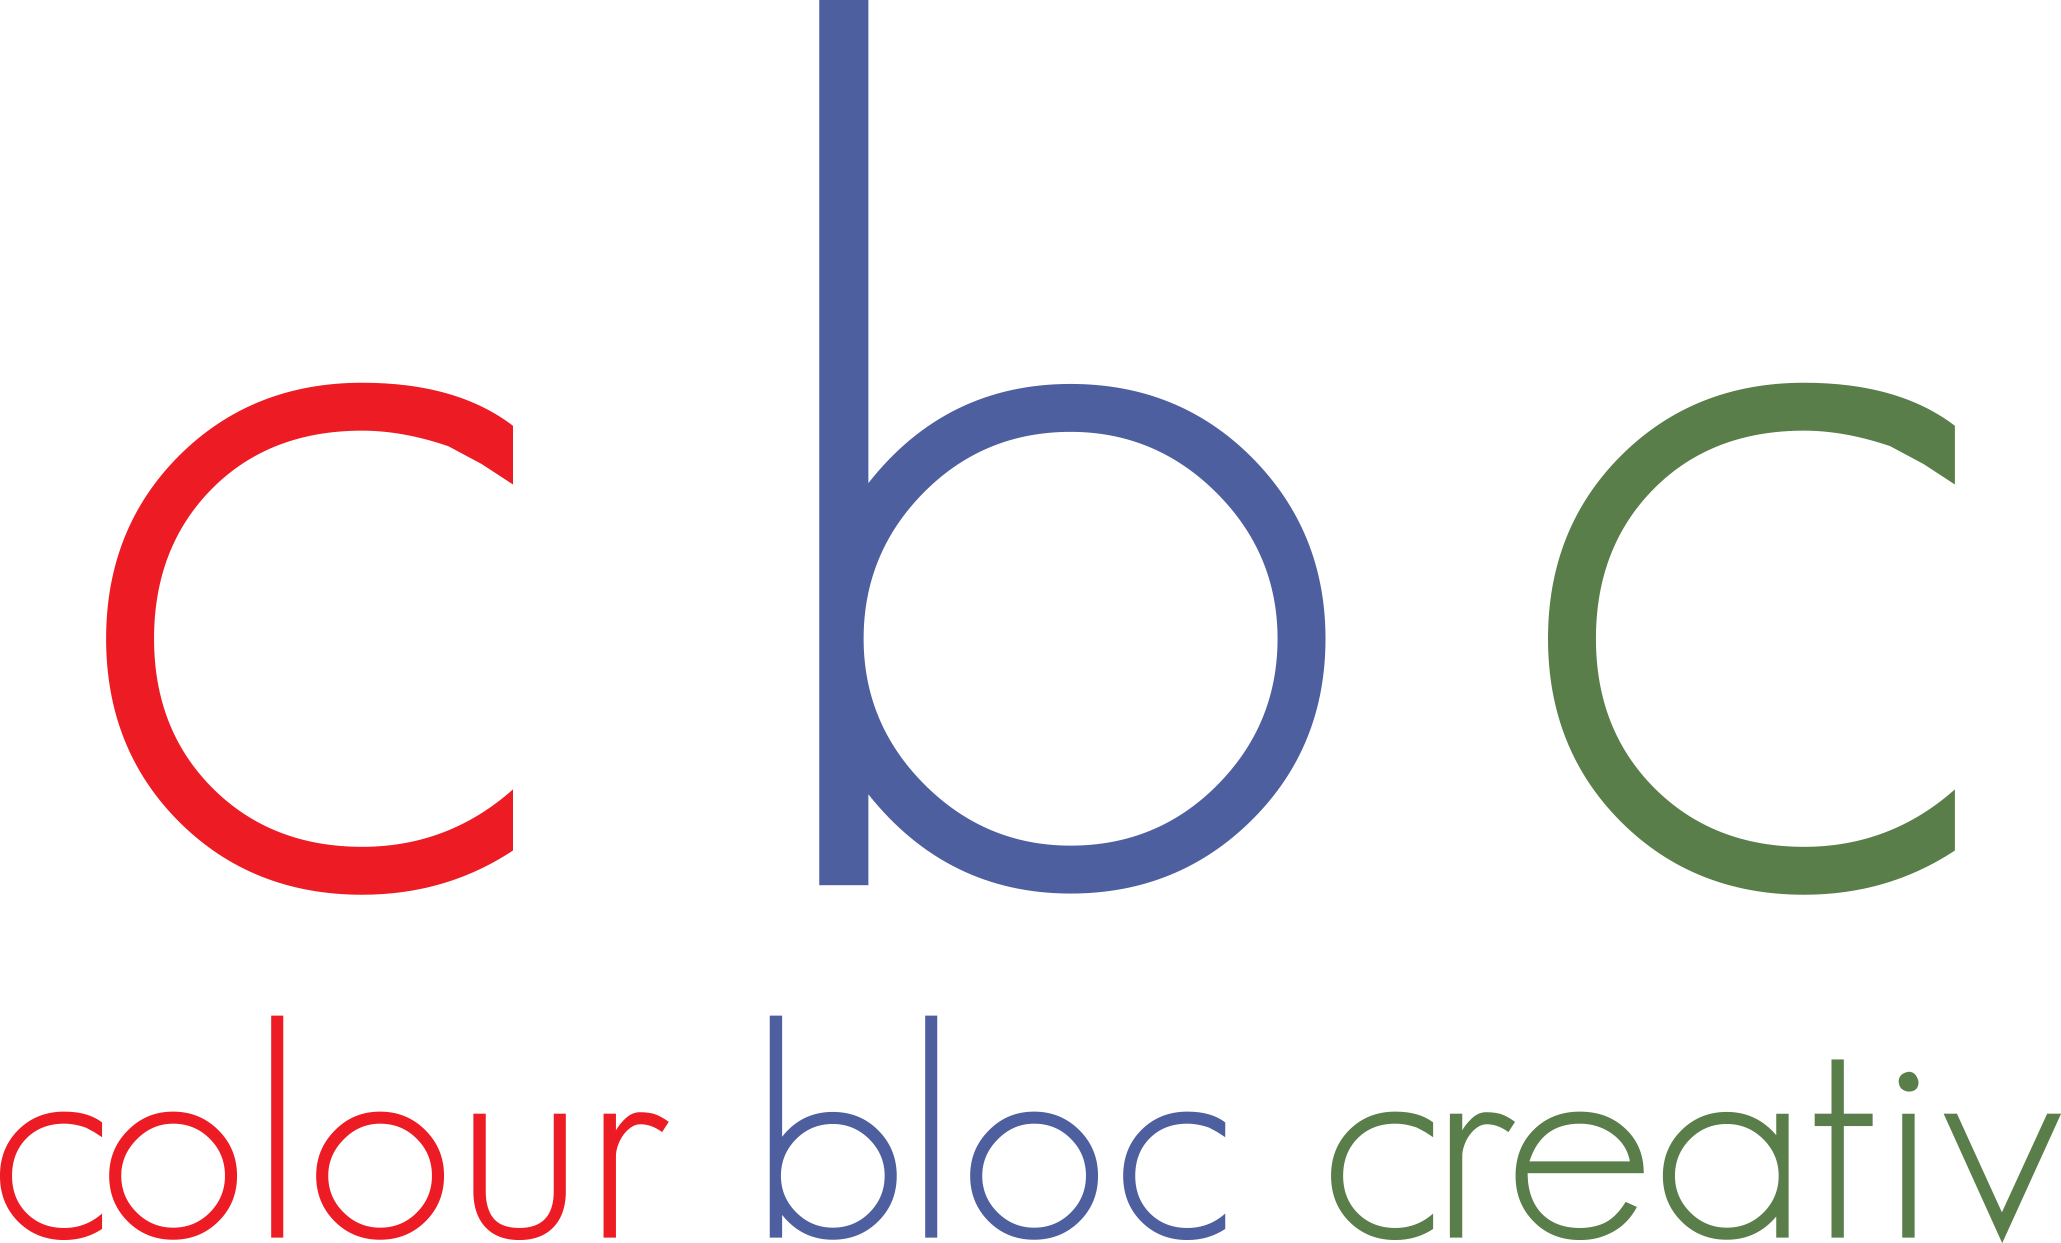 colour bloc creativ